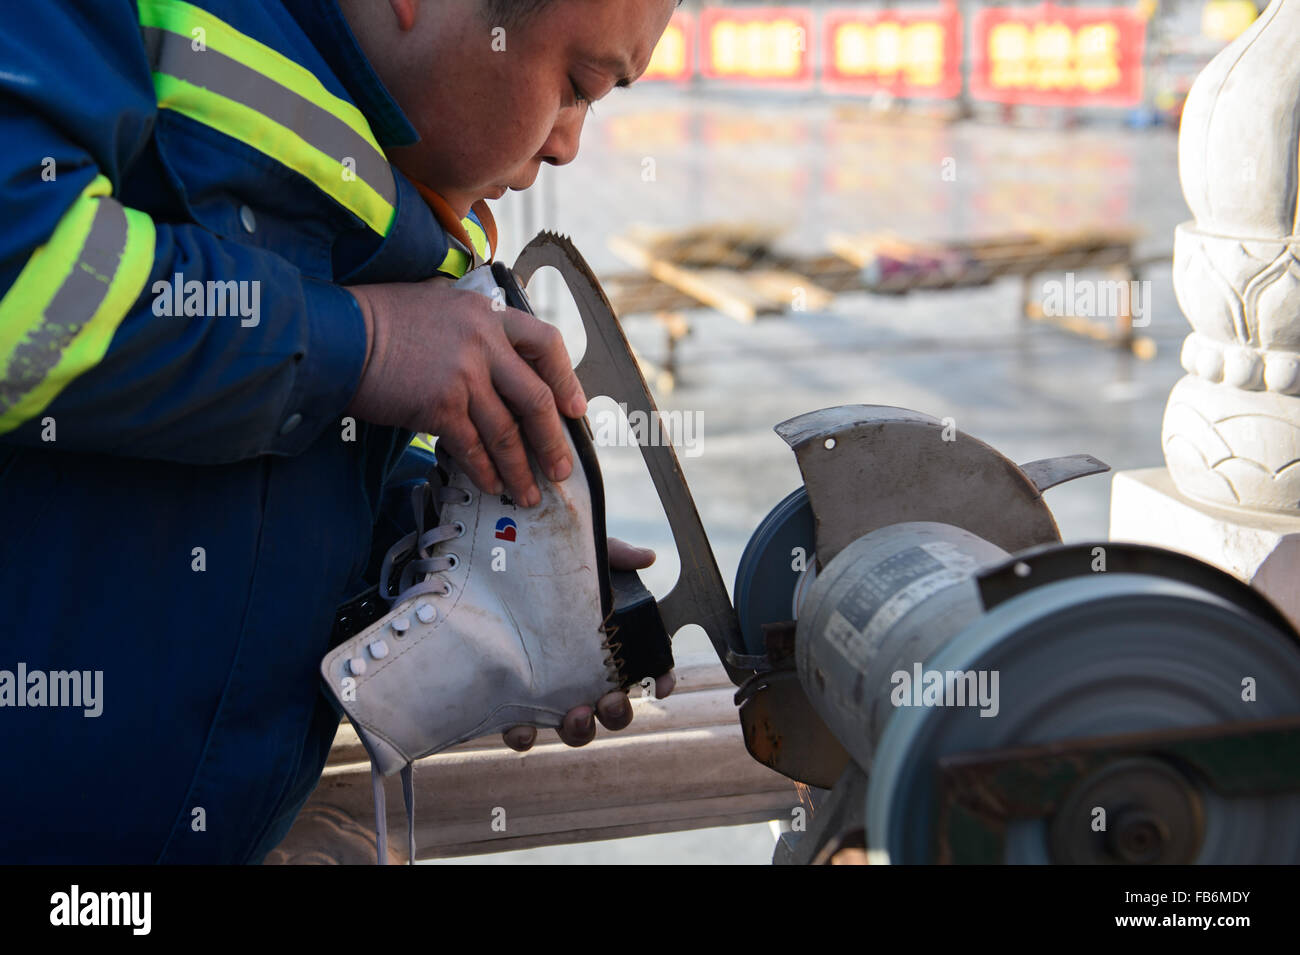 Beijing, China. 10th Jan, 2015. A worker sharpens ice skate blade outside a skating rink at Shichahai, a scenic - Stock Image